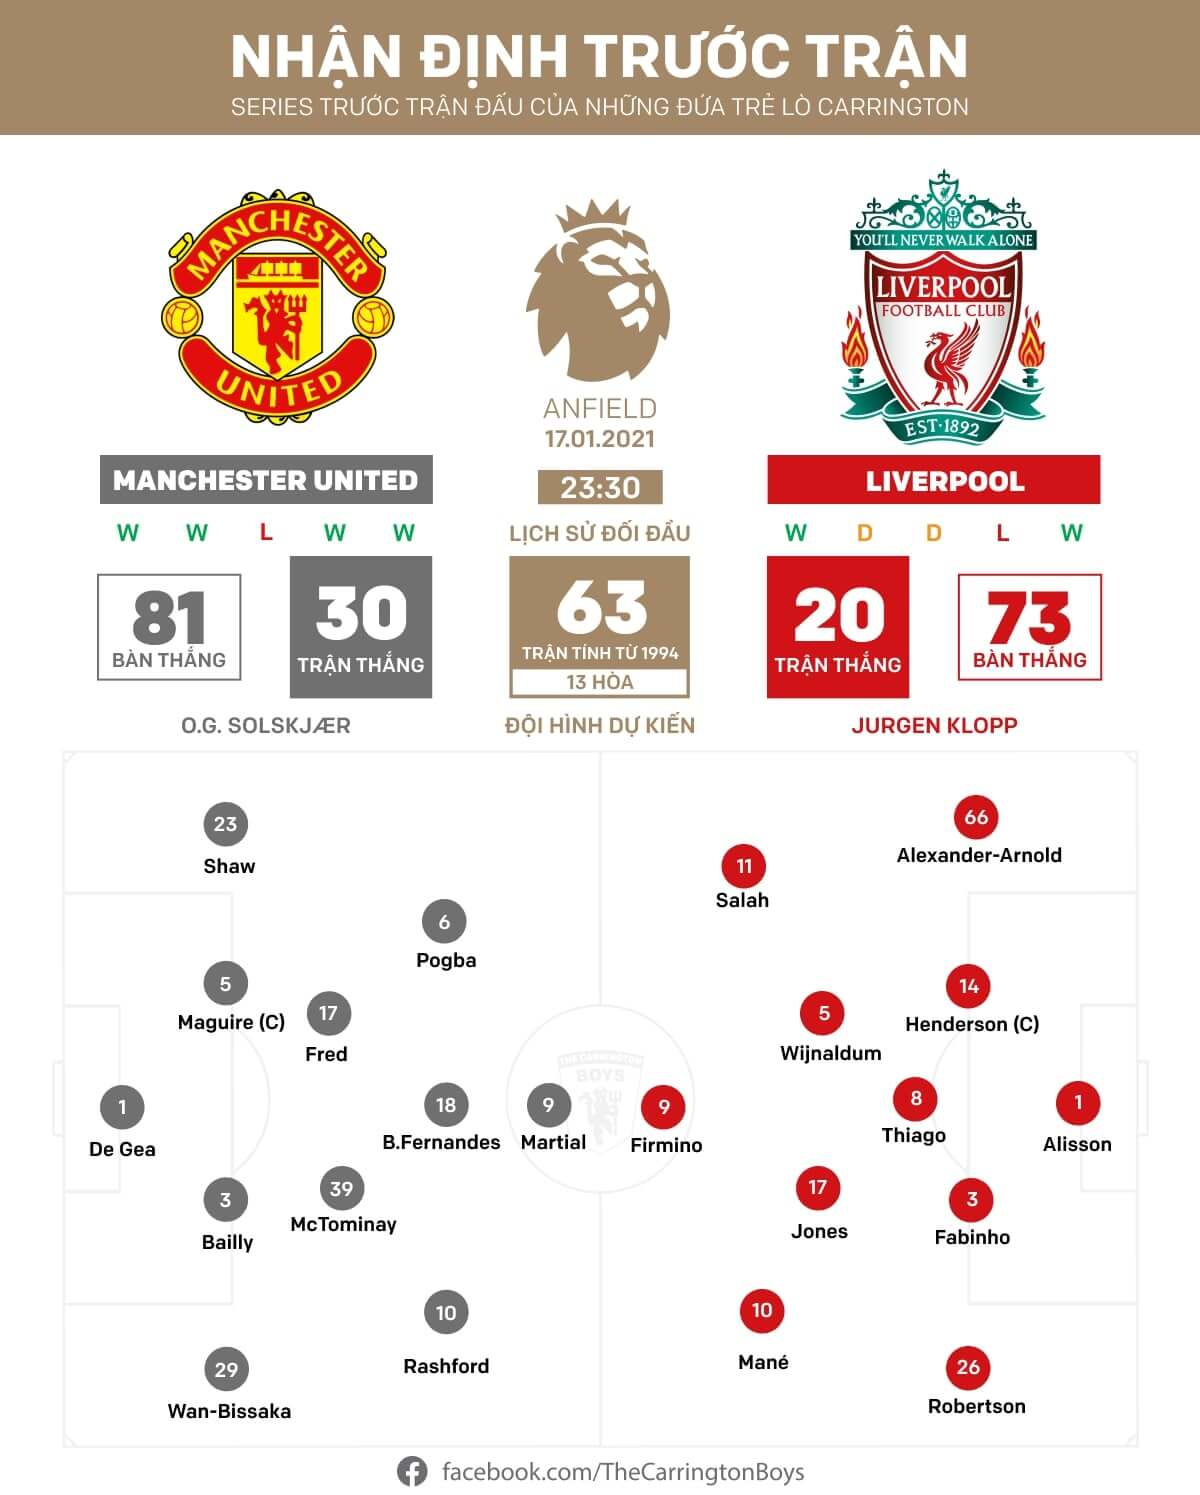 Liverpool vs Manchester United nhan dinh